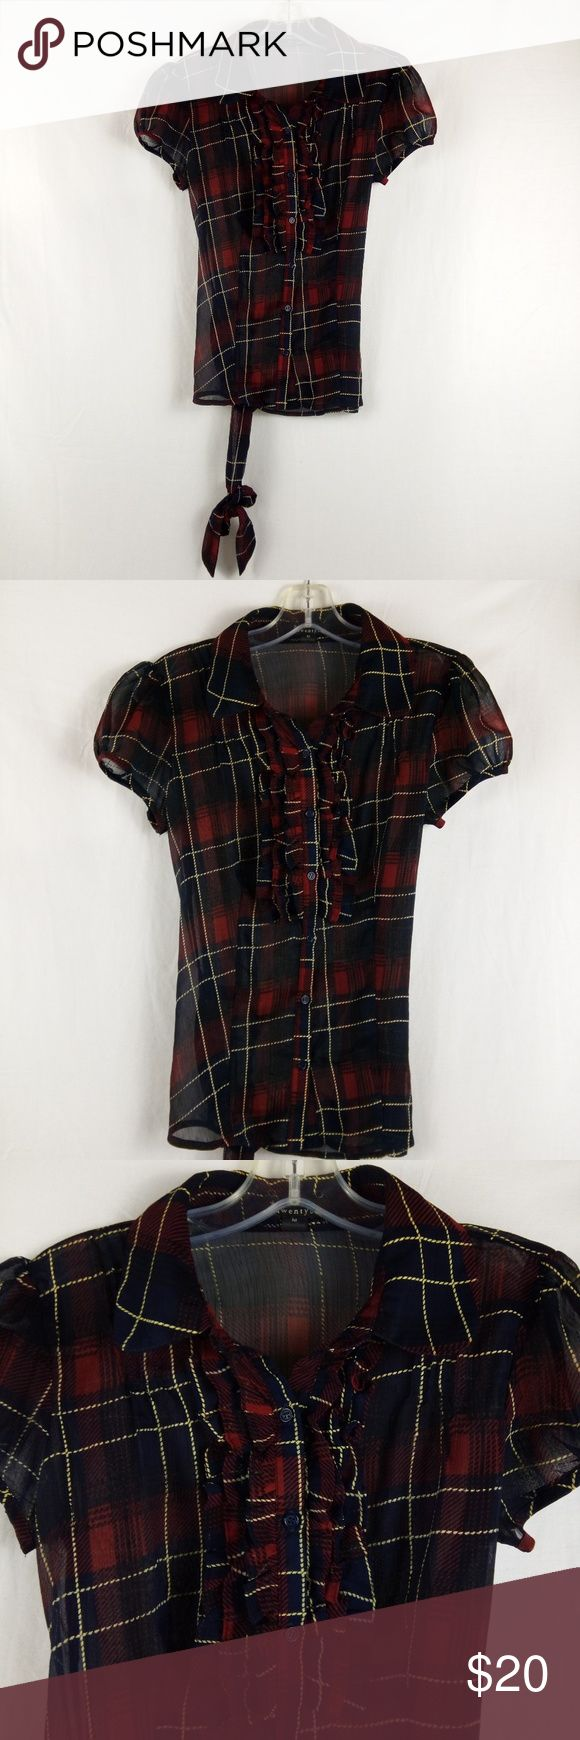 """Twenty one Blouse Size M Black Red Plaid Belt Clean very good condition.  MEASUREMENTS:  CHEST/BUST: 18""""  SLEEVE:  5.5""""  LENGTH: 24""""  We do our best to maintain quality standards during inspection before listing items for sale in our closet, so you are happy to open your Poshmark package from Shebrew Trading Store!  We ship items immediately and maintain a high satisfaction rating. Thank you! twenty one Tops Blouses"""